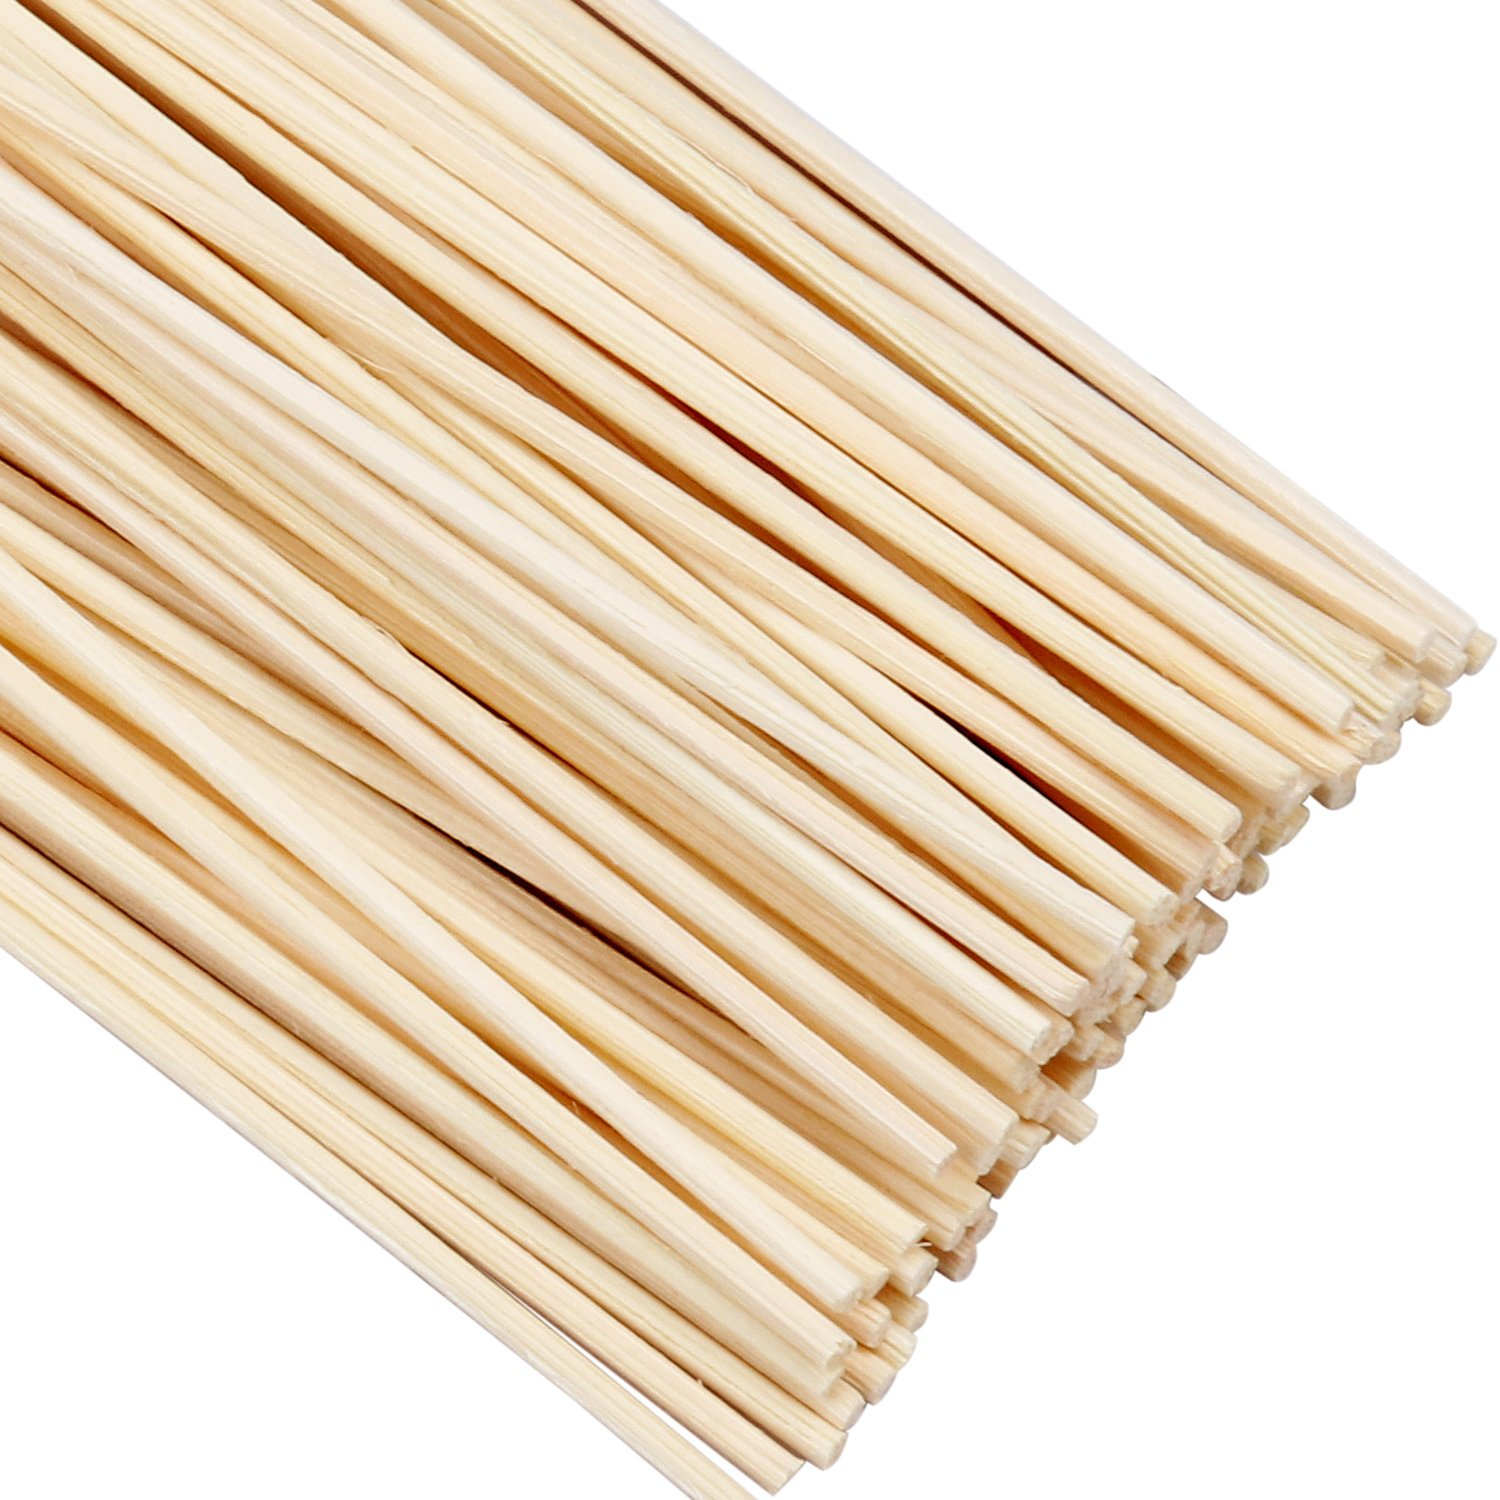 Cavetee 150 Set Reed Diffuser Sticks Wood Rattan Diffuser Essential Oil Replacement Sticks 24 cm/9.45 inches